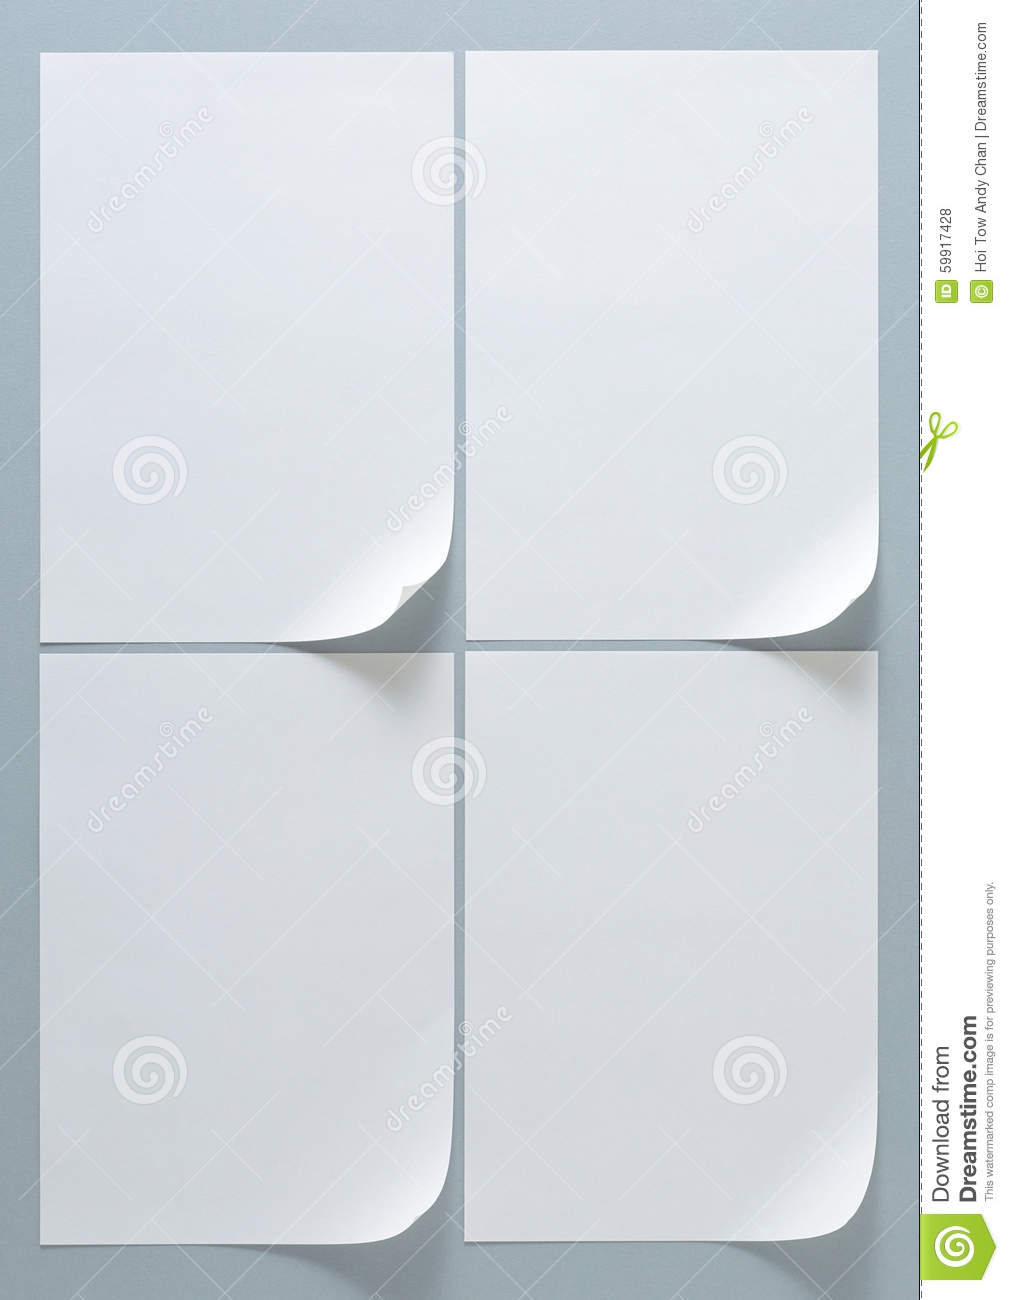 Design Frame Layout A4 Size Paper Stock Photo - Image: 59917428